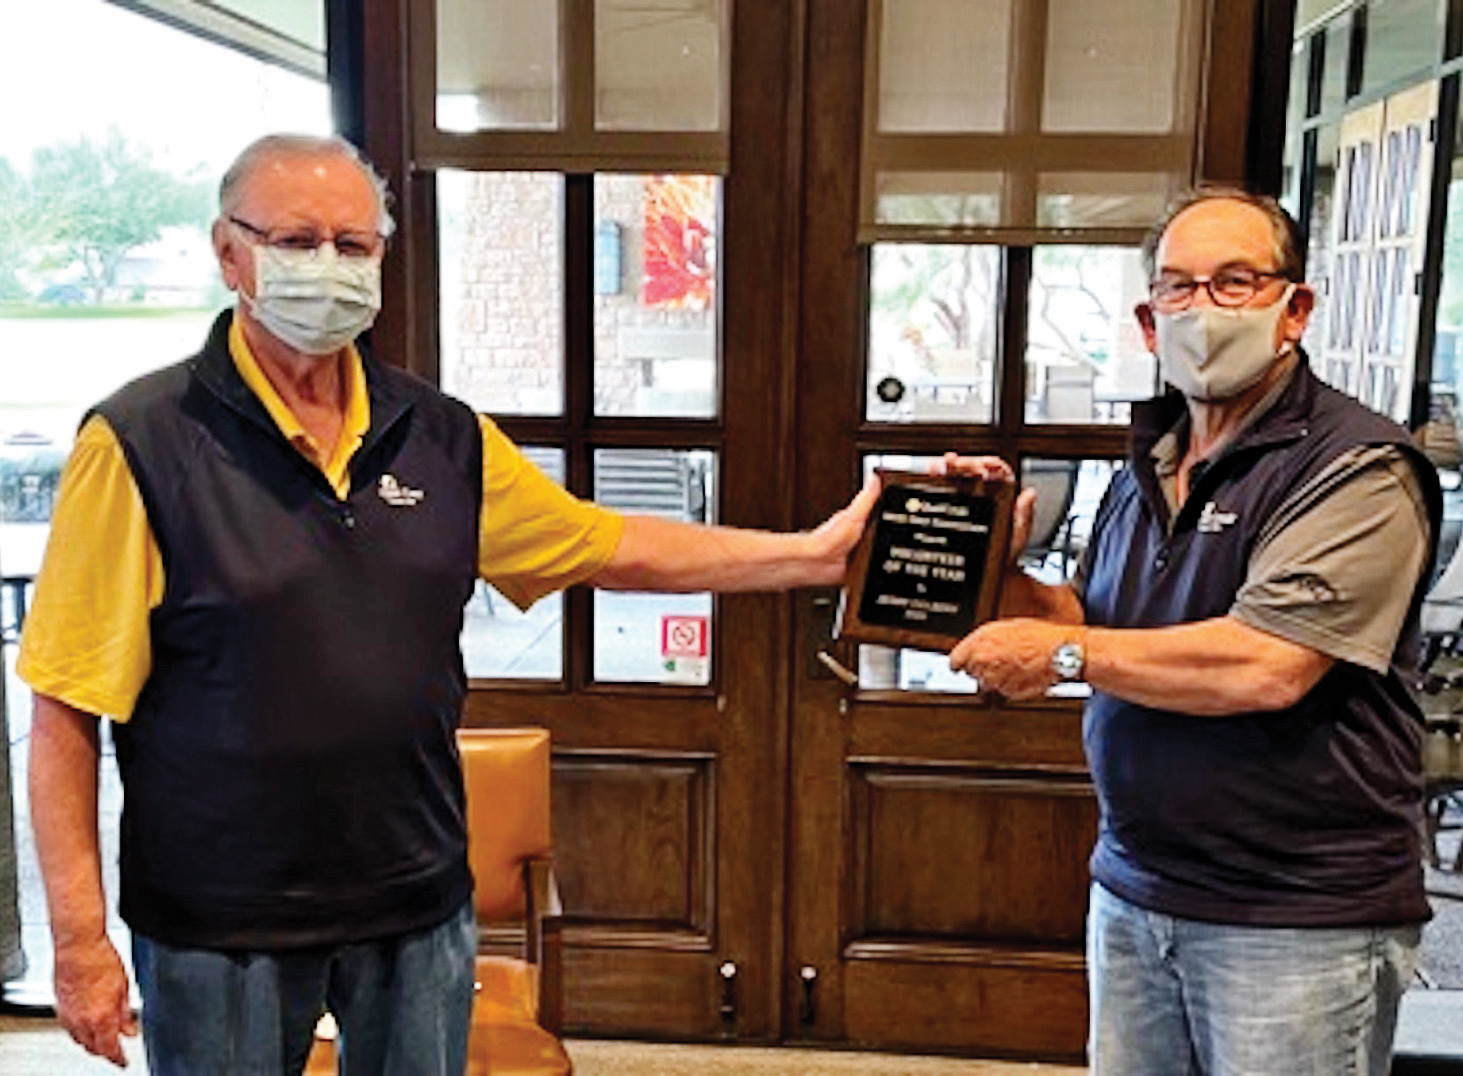 Jerry Colbert (left) receives the 2020 QCMGA Volunteer of the Year Award from outgoing president Shel Zatkin.